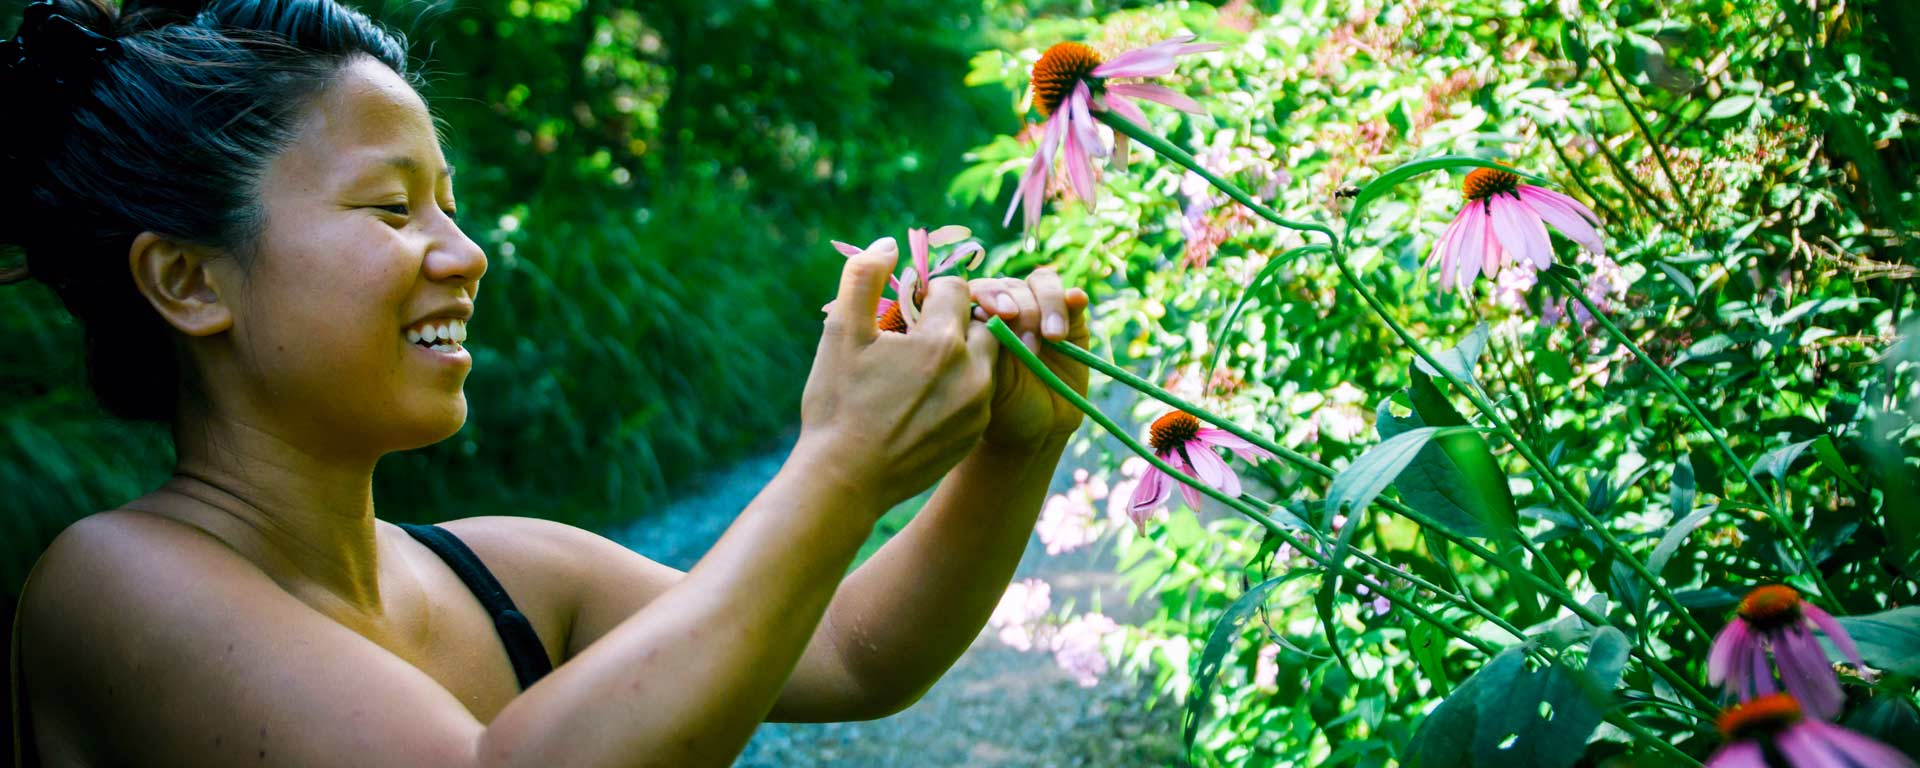 woman harvesting echinacea flowers in a permaculture garden